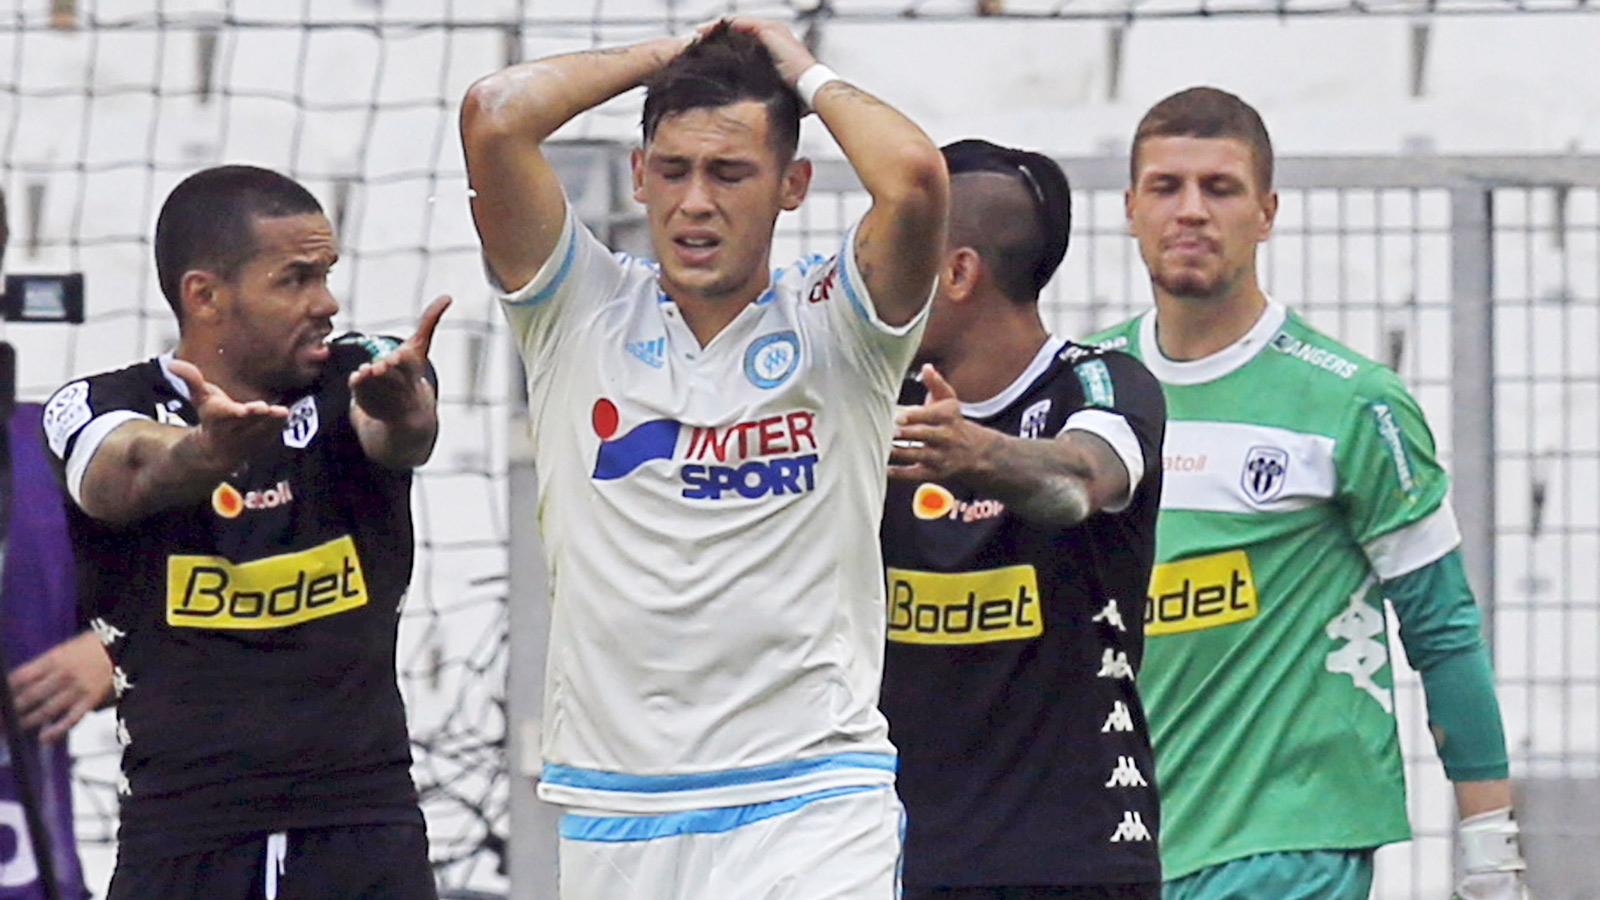 Ligue 1: Marseille lose to newly promoted Angers, Monaco stutter